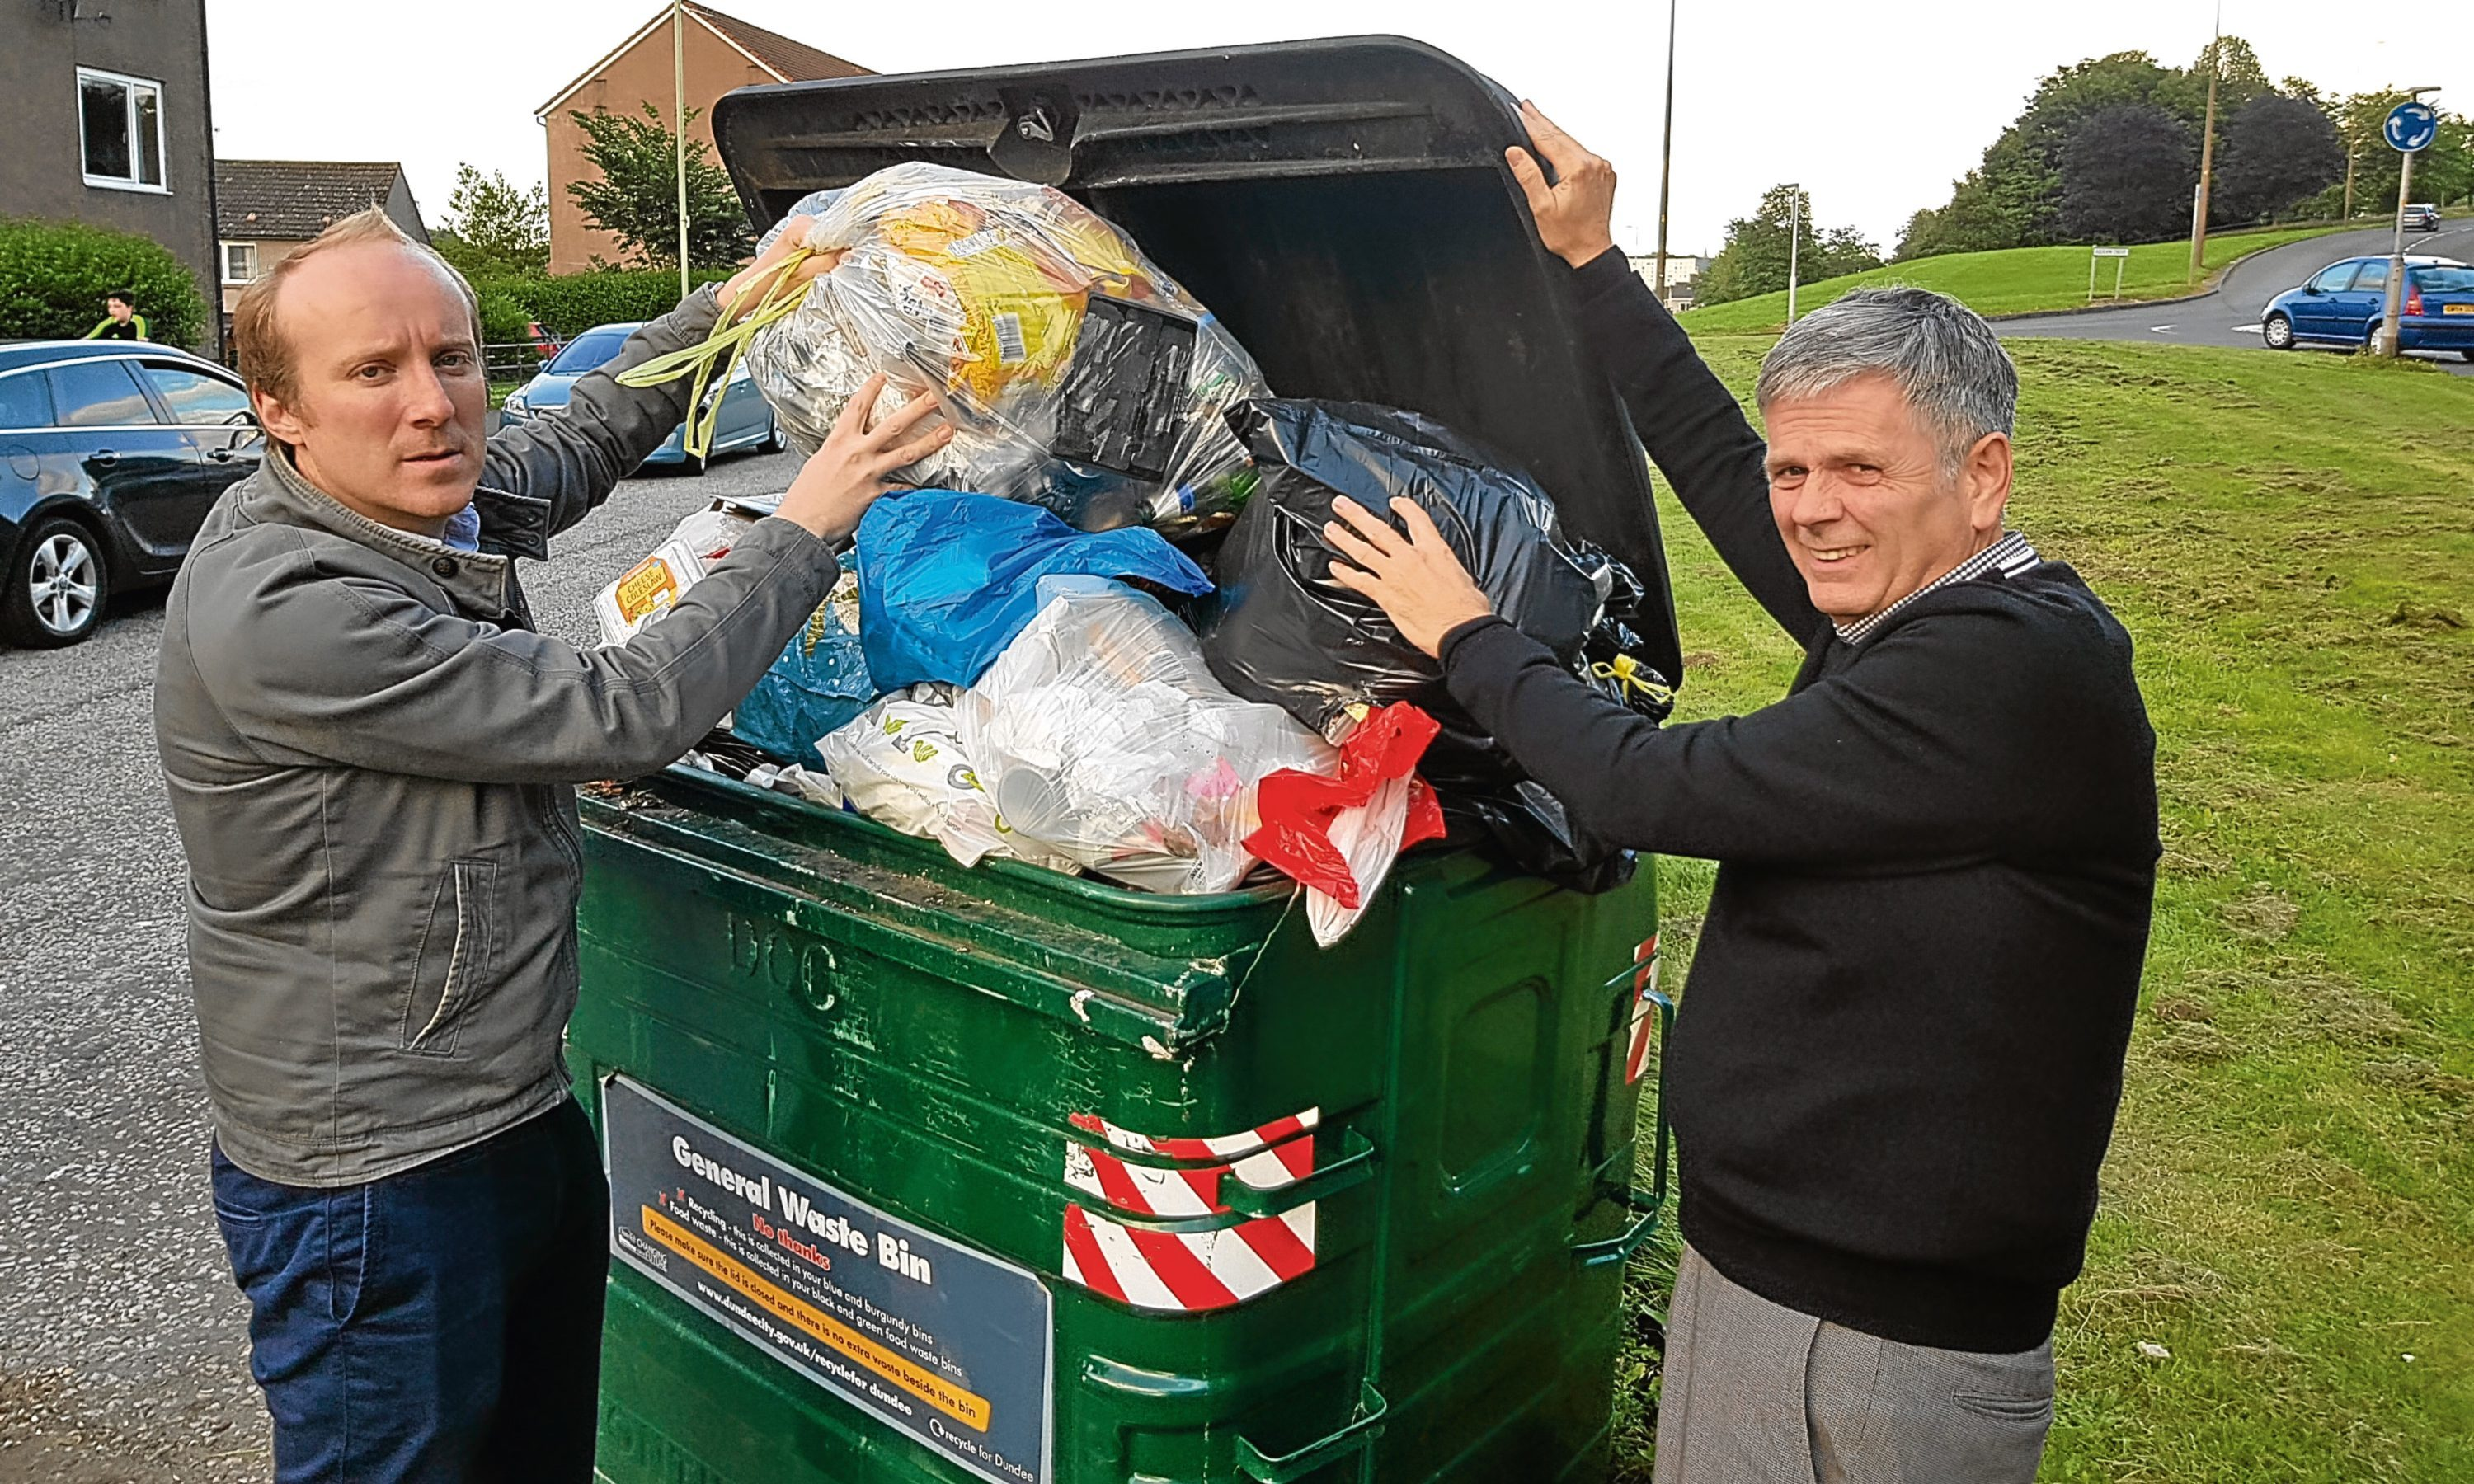 Michael Marra, left, and Charlie Malone in Lochee